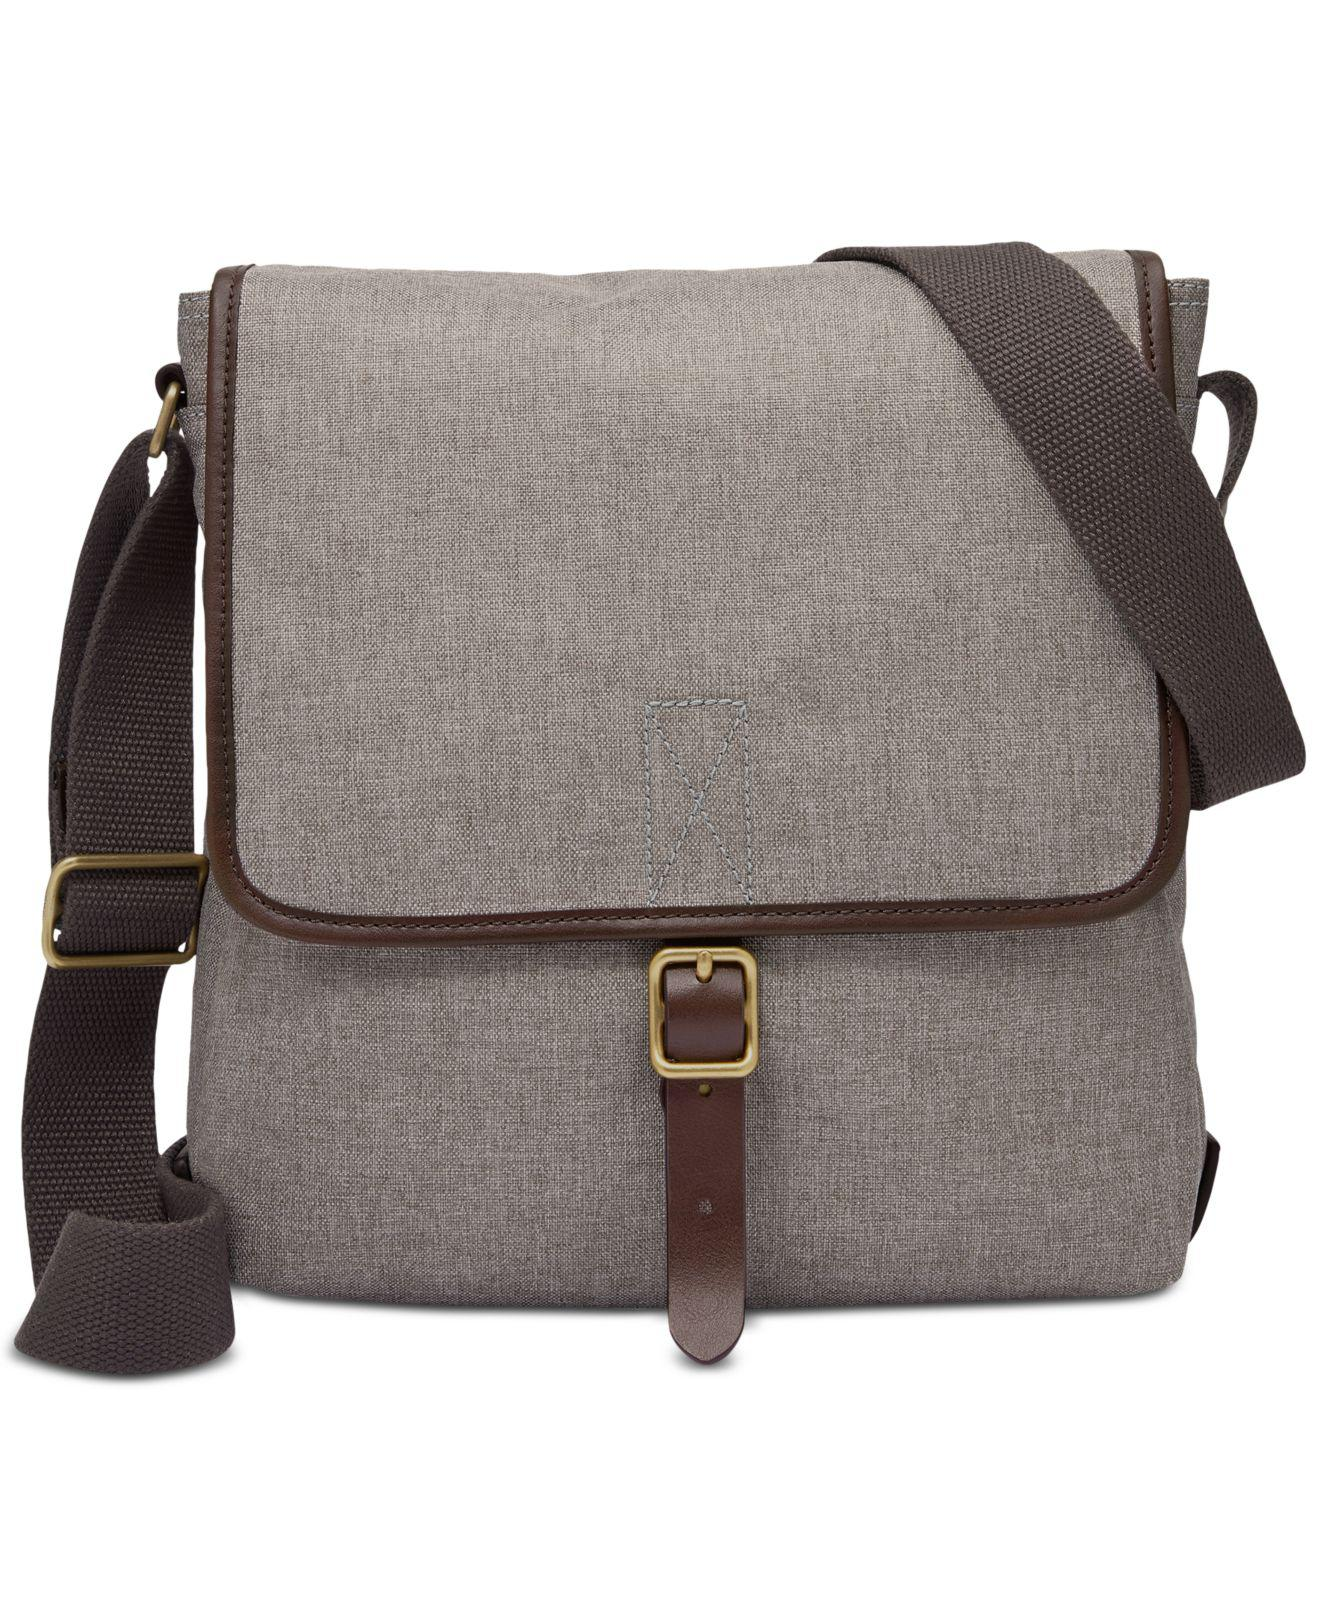 Lyst - Fossil Buckner City Bag for Men a8ced389d2